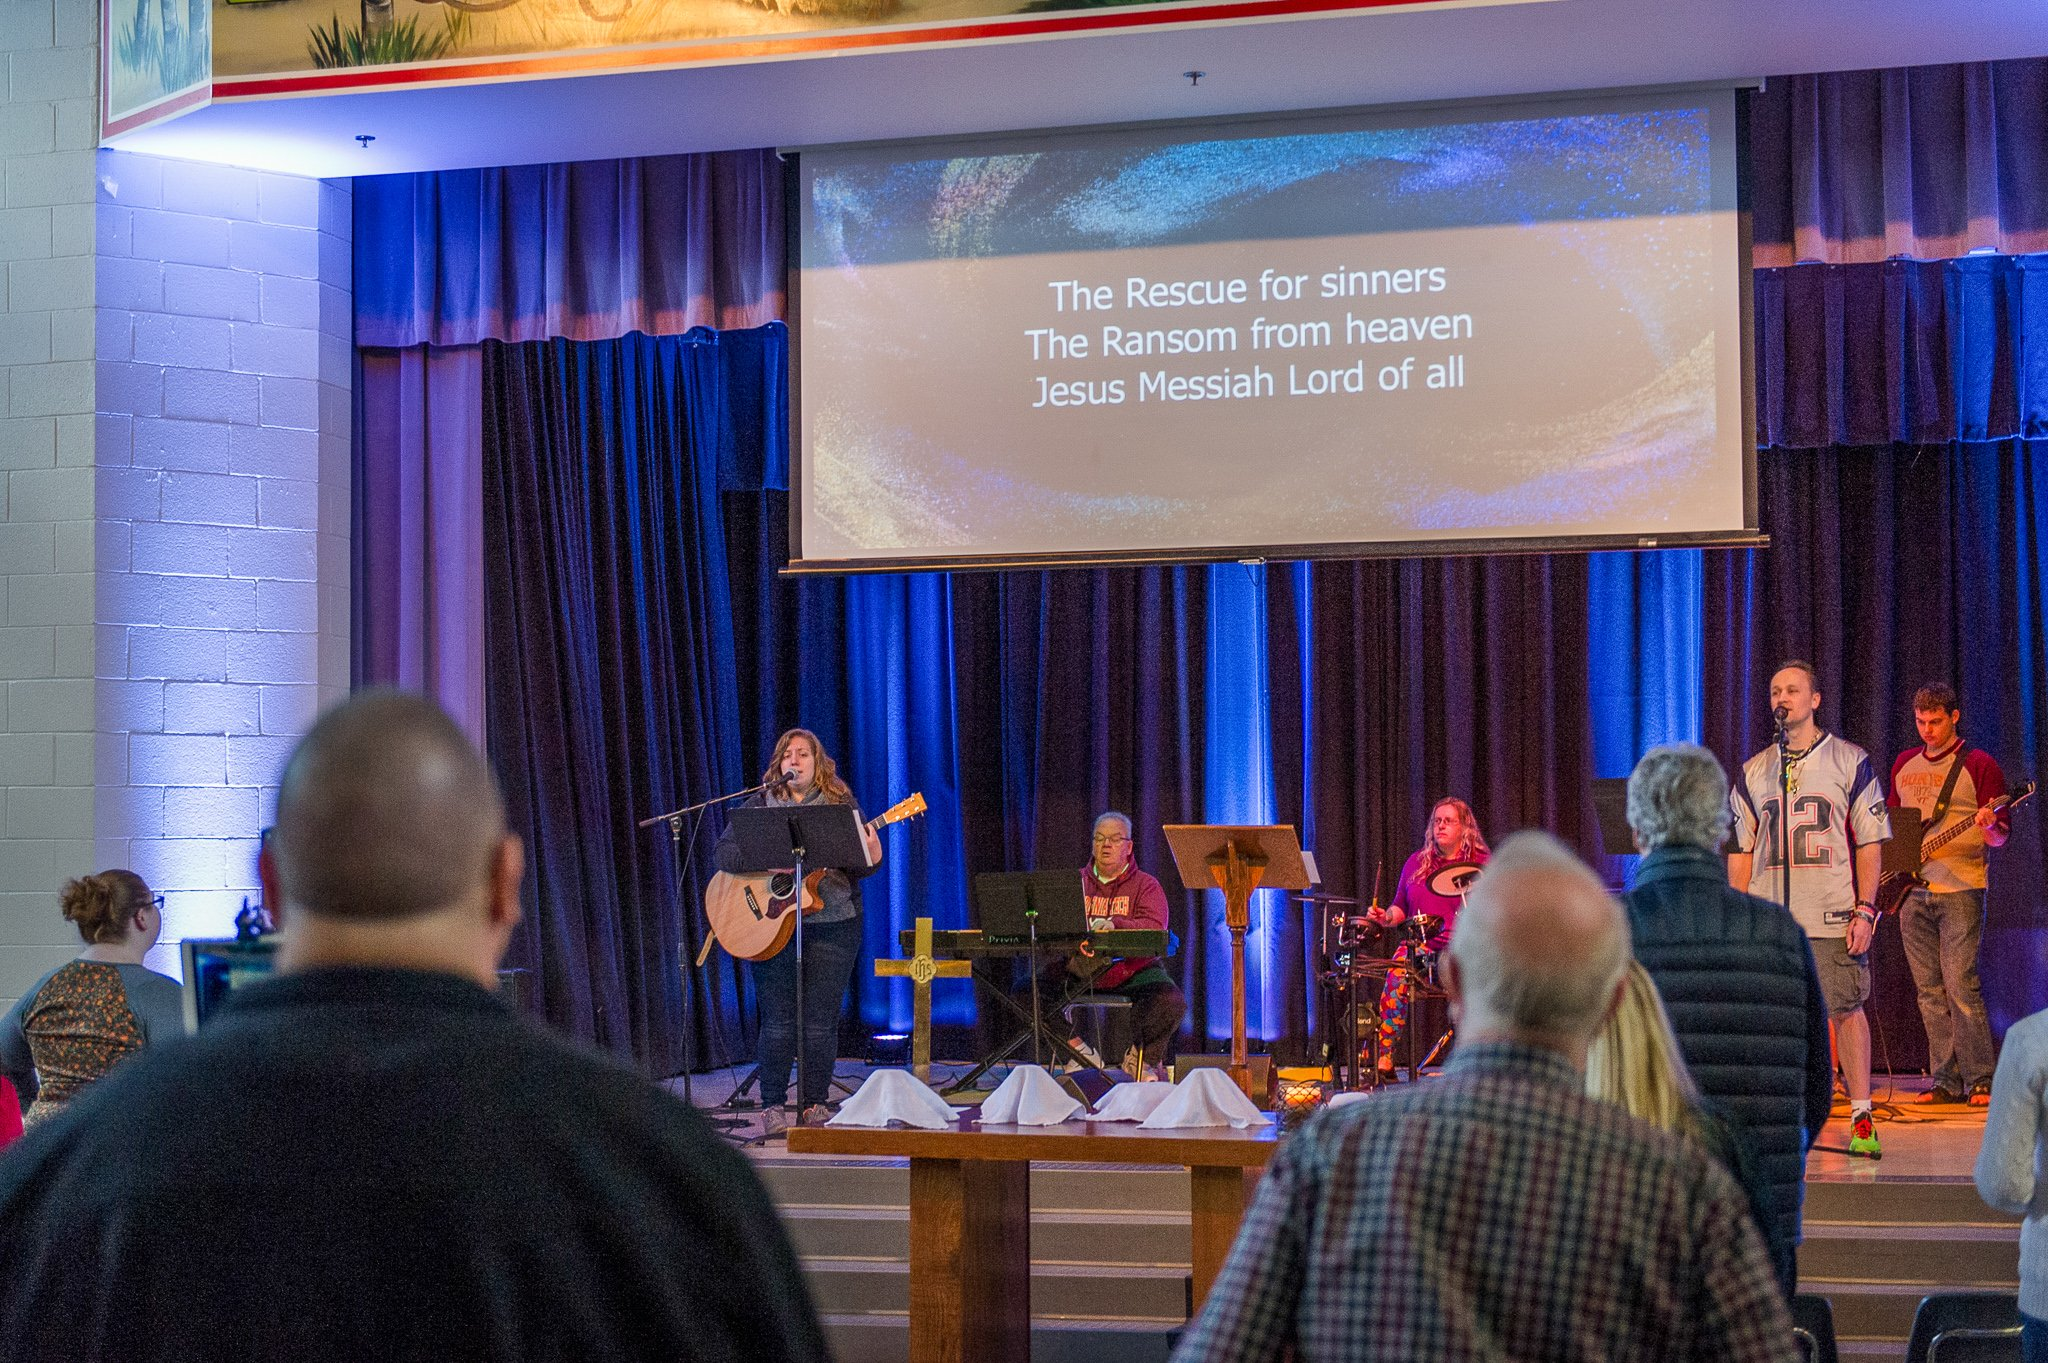 view of worship from behind a row of people, band on the stage